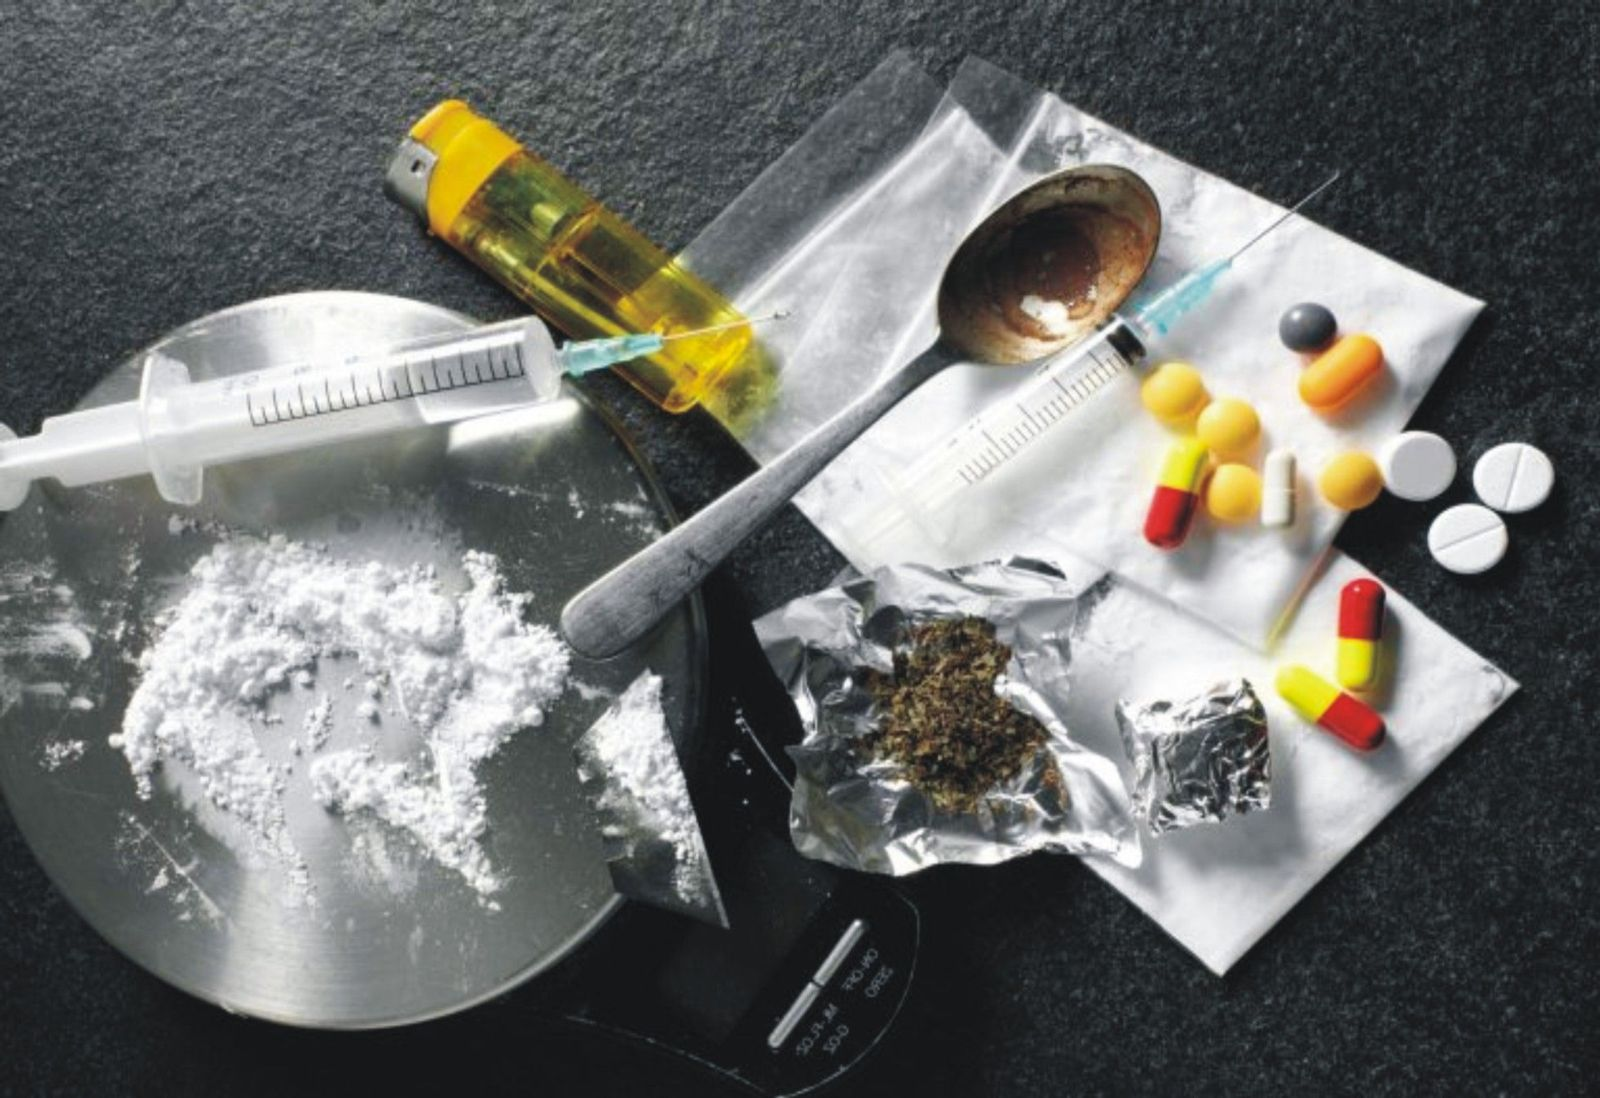 Oregon Measure 110: Oregon to Decriminalize Small Amounts of Heroin and Other Street Drugs